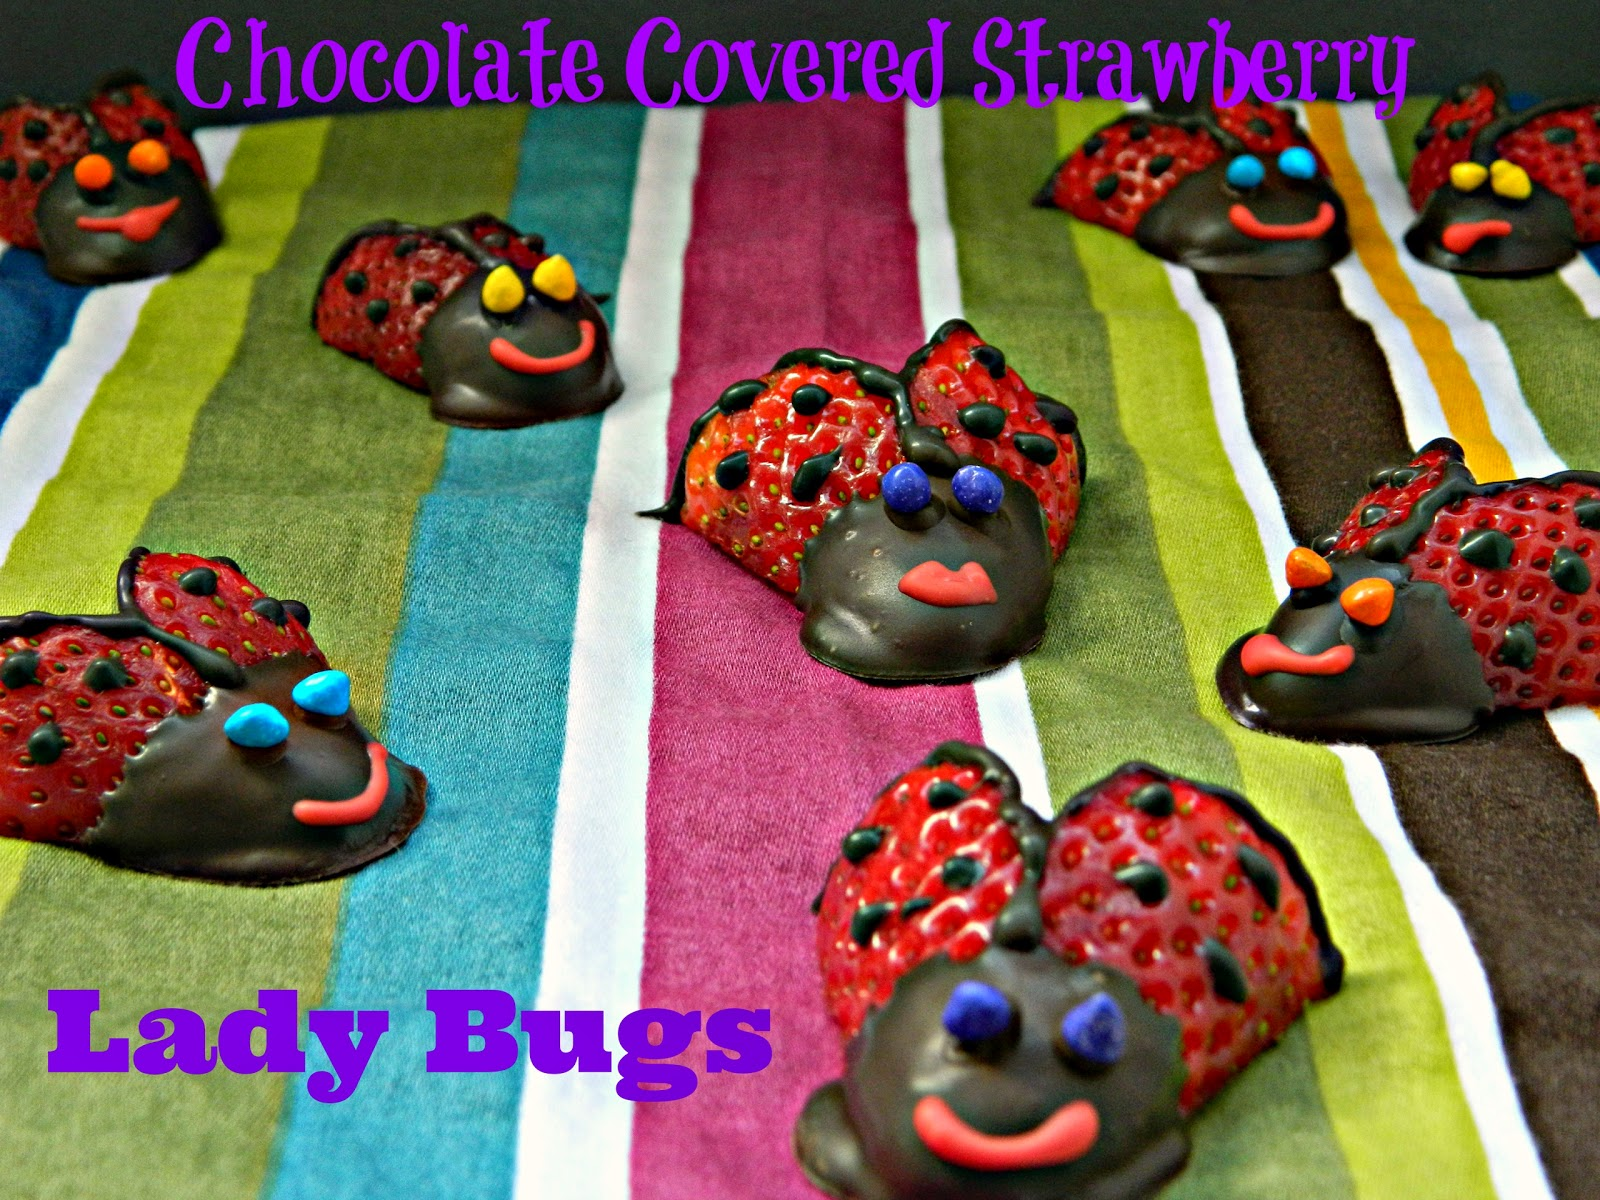 Chocolate Covered Strawberry lady bugs